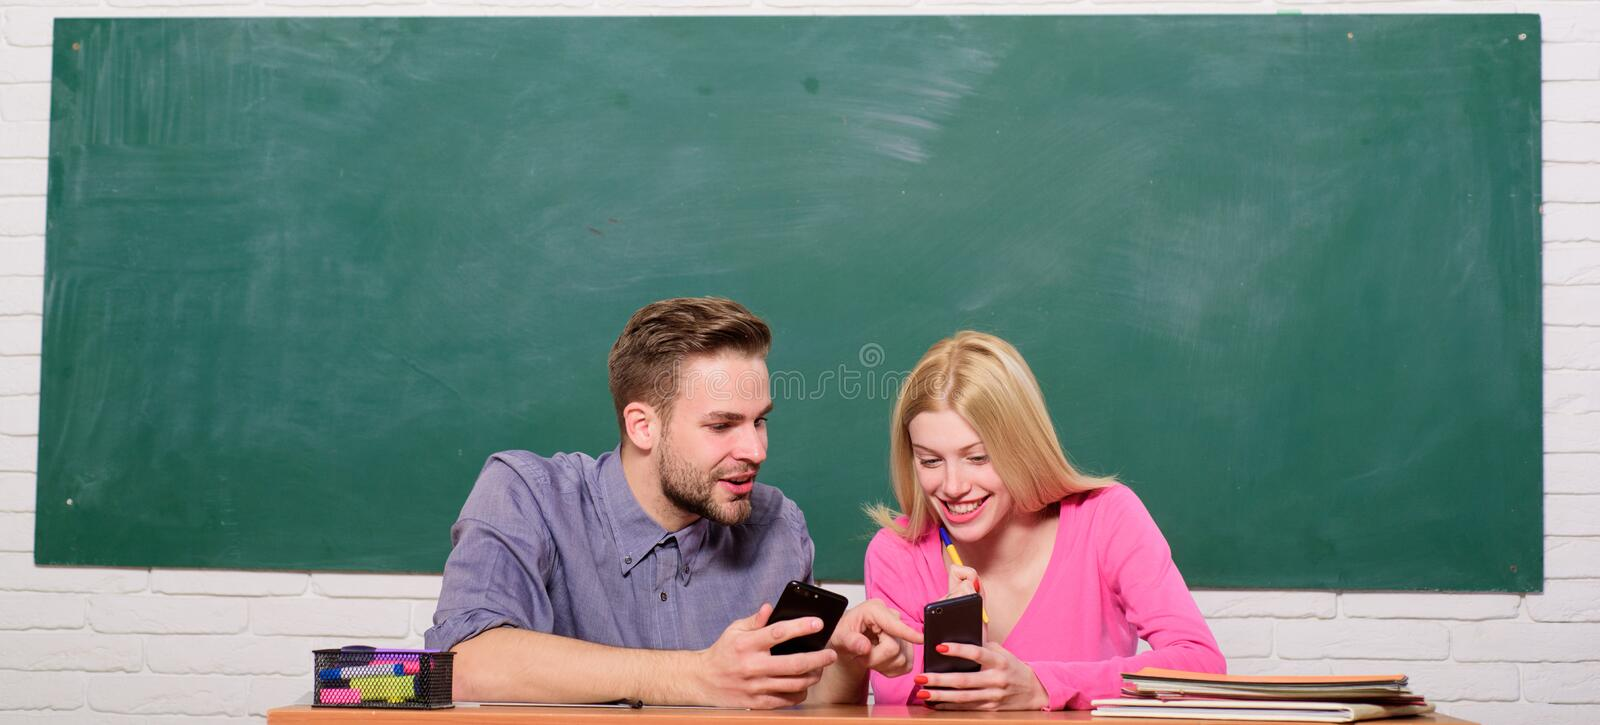 Student life. Lesson and blackboard. Teachers day. Modern school. Knowledge day. Couple of man and woman in classroom royalty free stock image